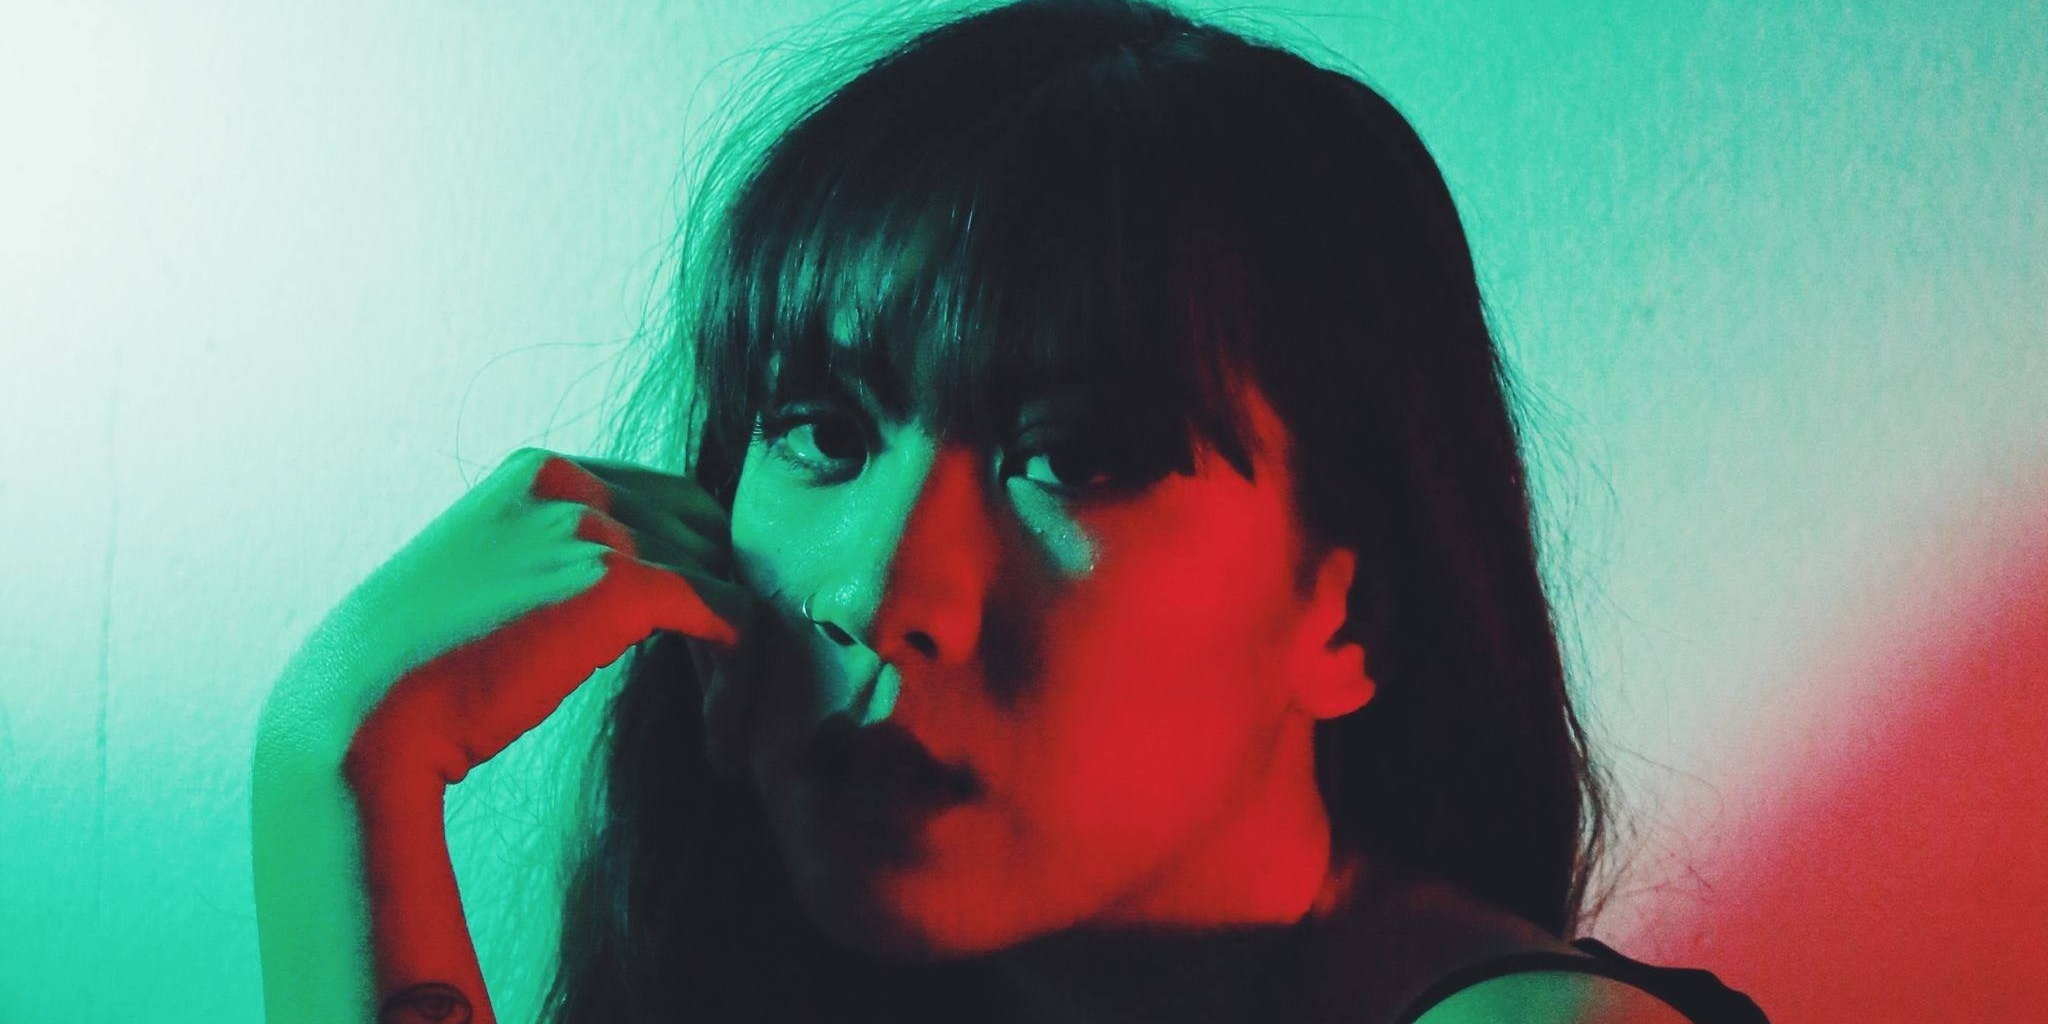 LISTEN: Sam Rui at her best in 'Better', new EP forthcoming